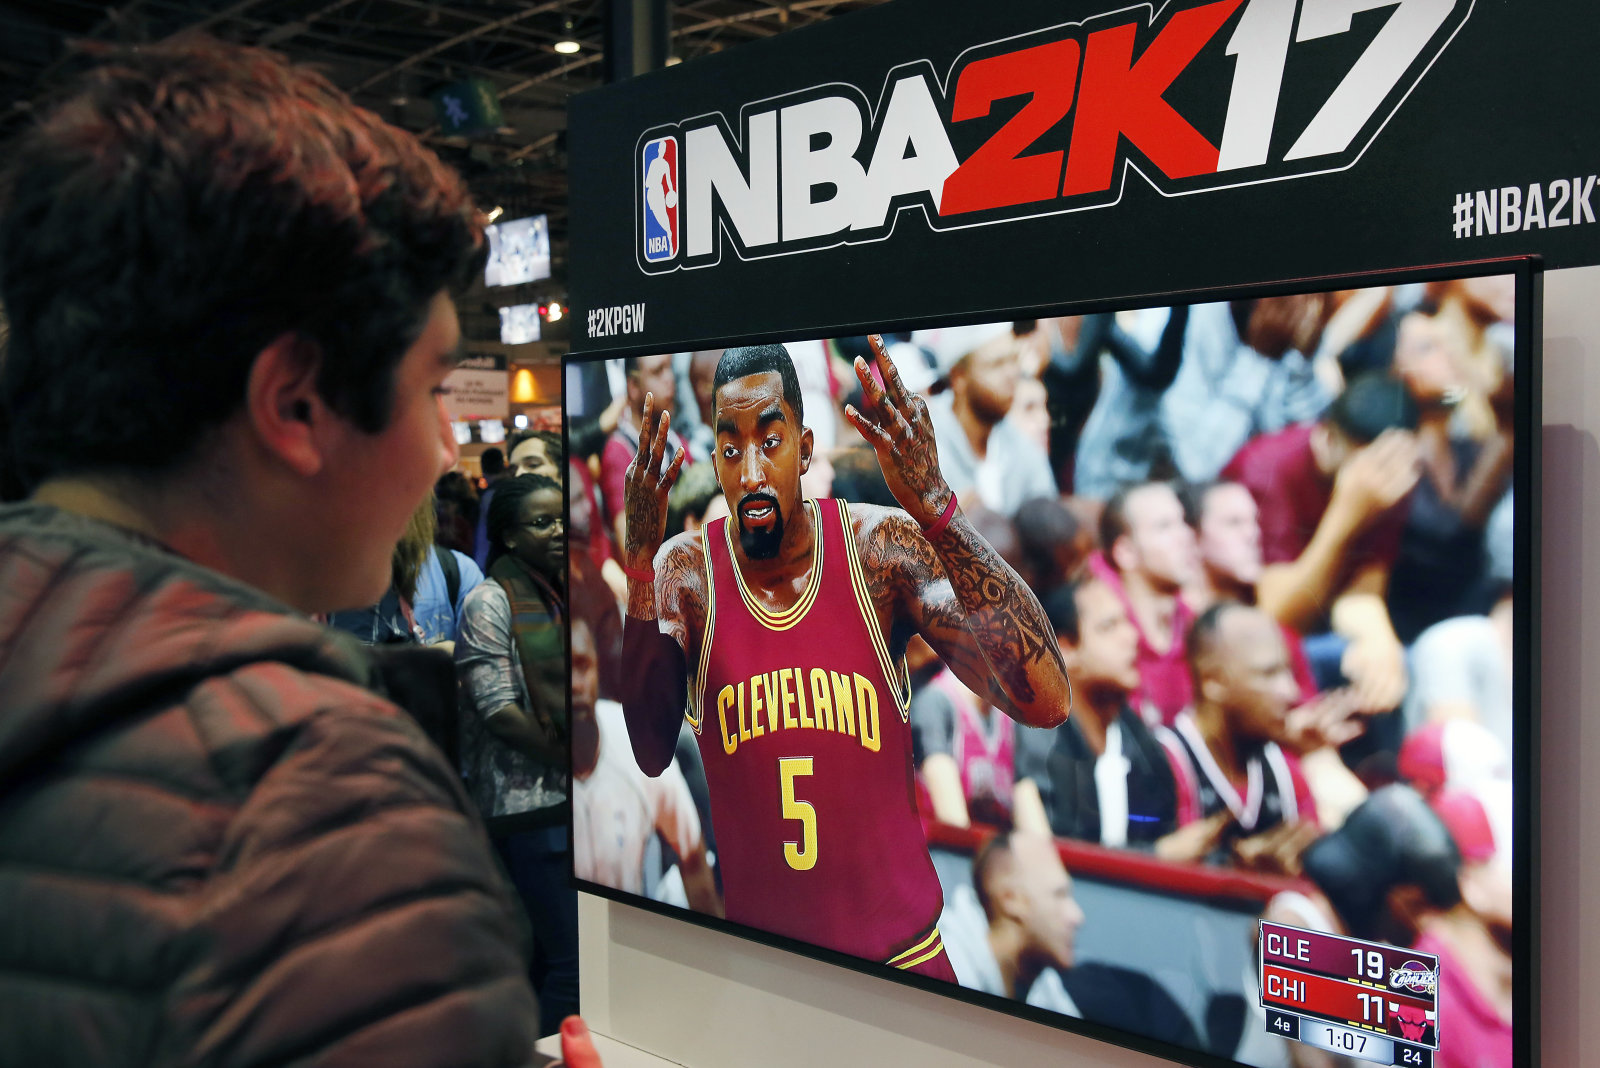 NBA Stars Play eSports - New Deals For Fans